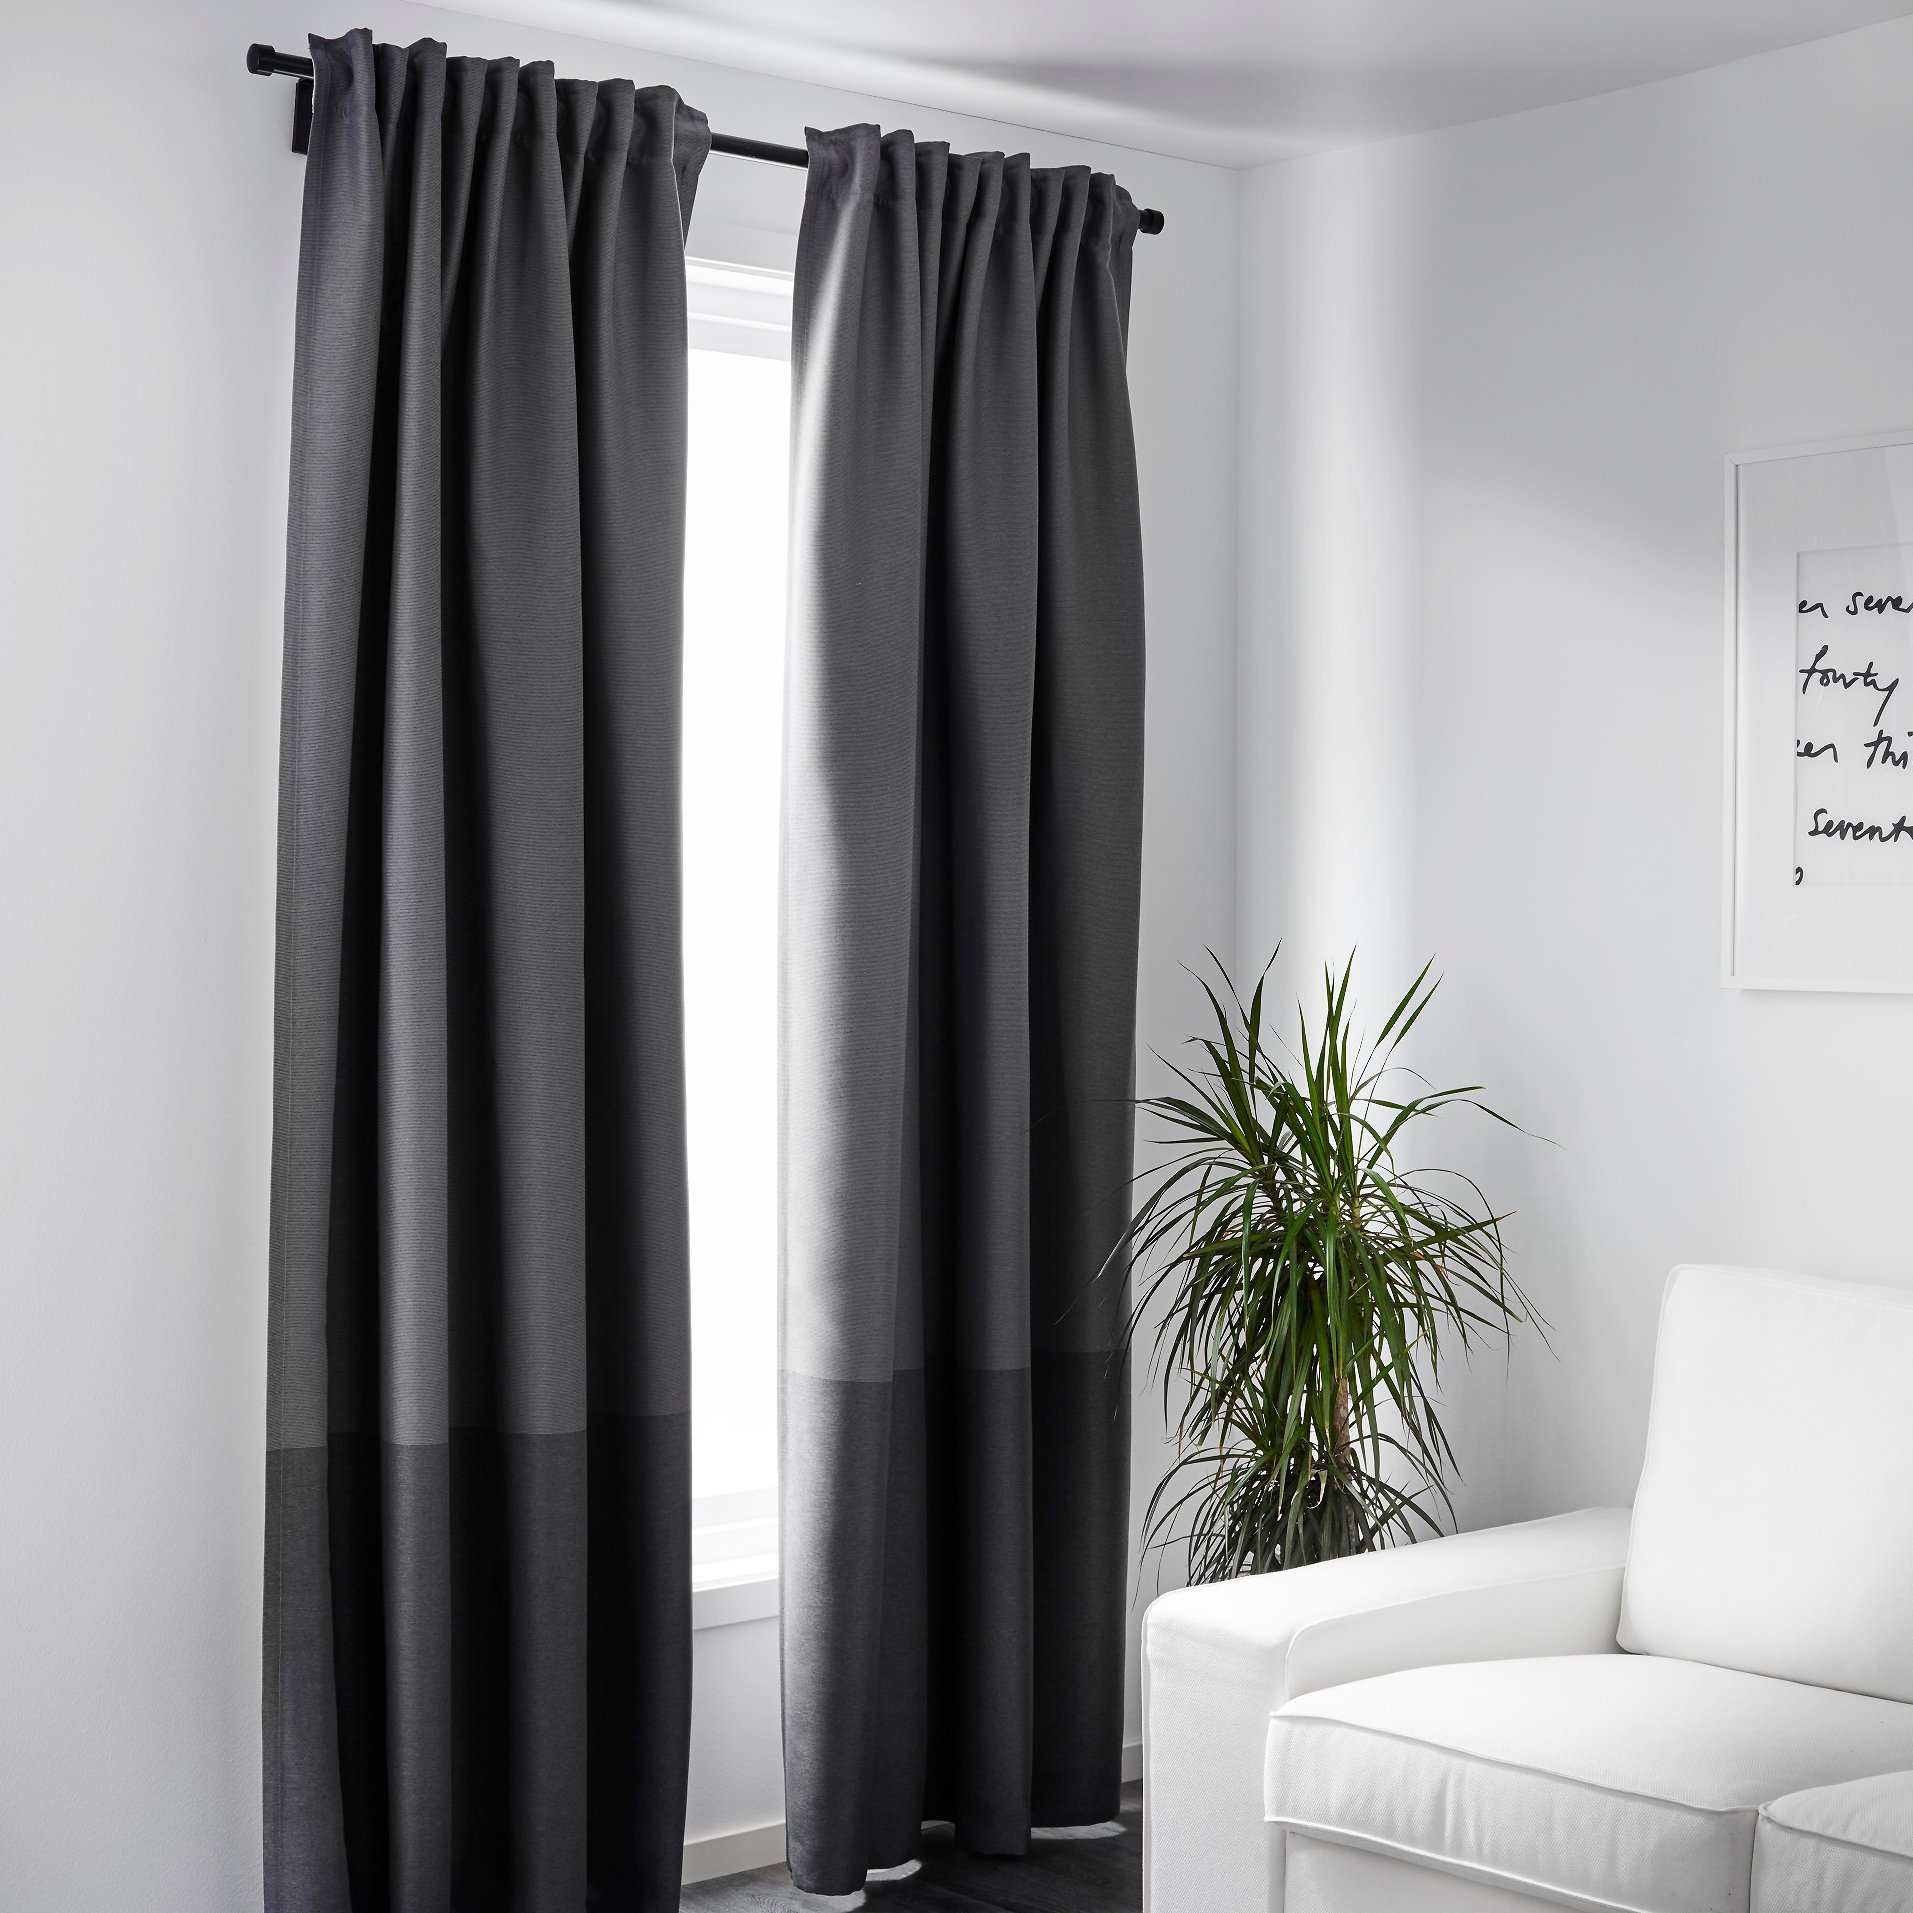 Cheap Blackout Curtains for Inspiring Home Decorating Ideas: Cheap Blackout Curtains | Black And White Blackout Curtains | Short Blackout Curtains